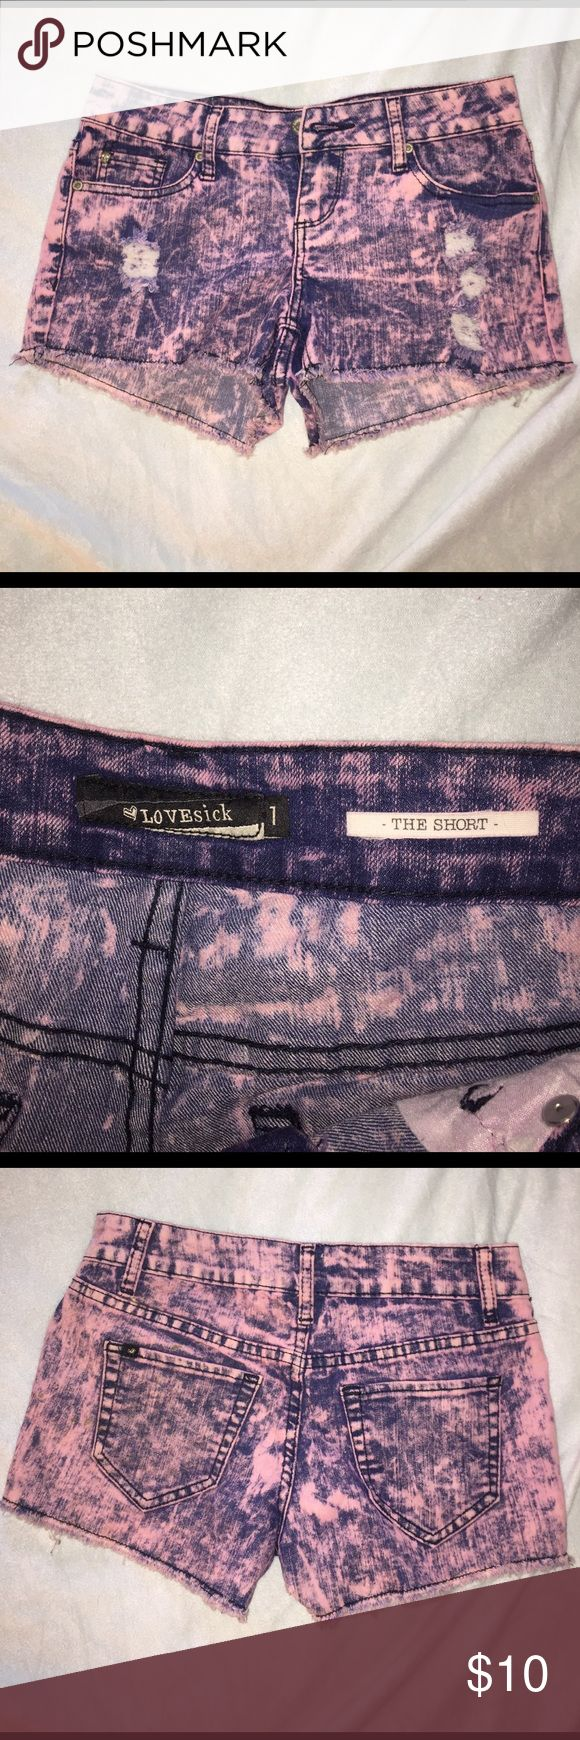 Distressed acid wash shorts Pink and blue pair of cute distressed acid wash shorts from hot topic. Only worn like twice they are in perfect condition! Hot Topic Shorts Jean Shorts